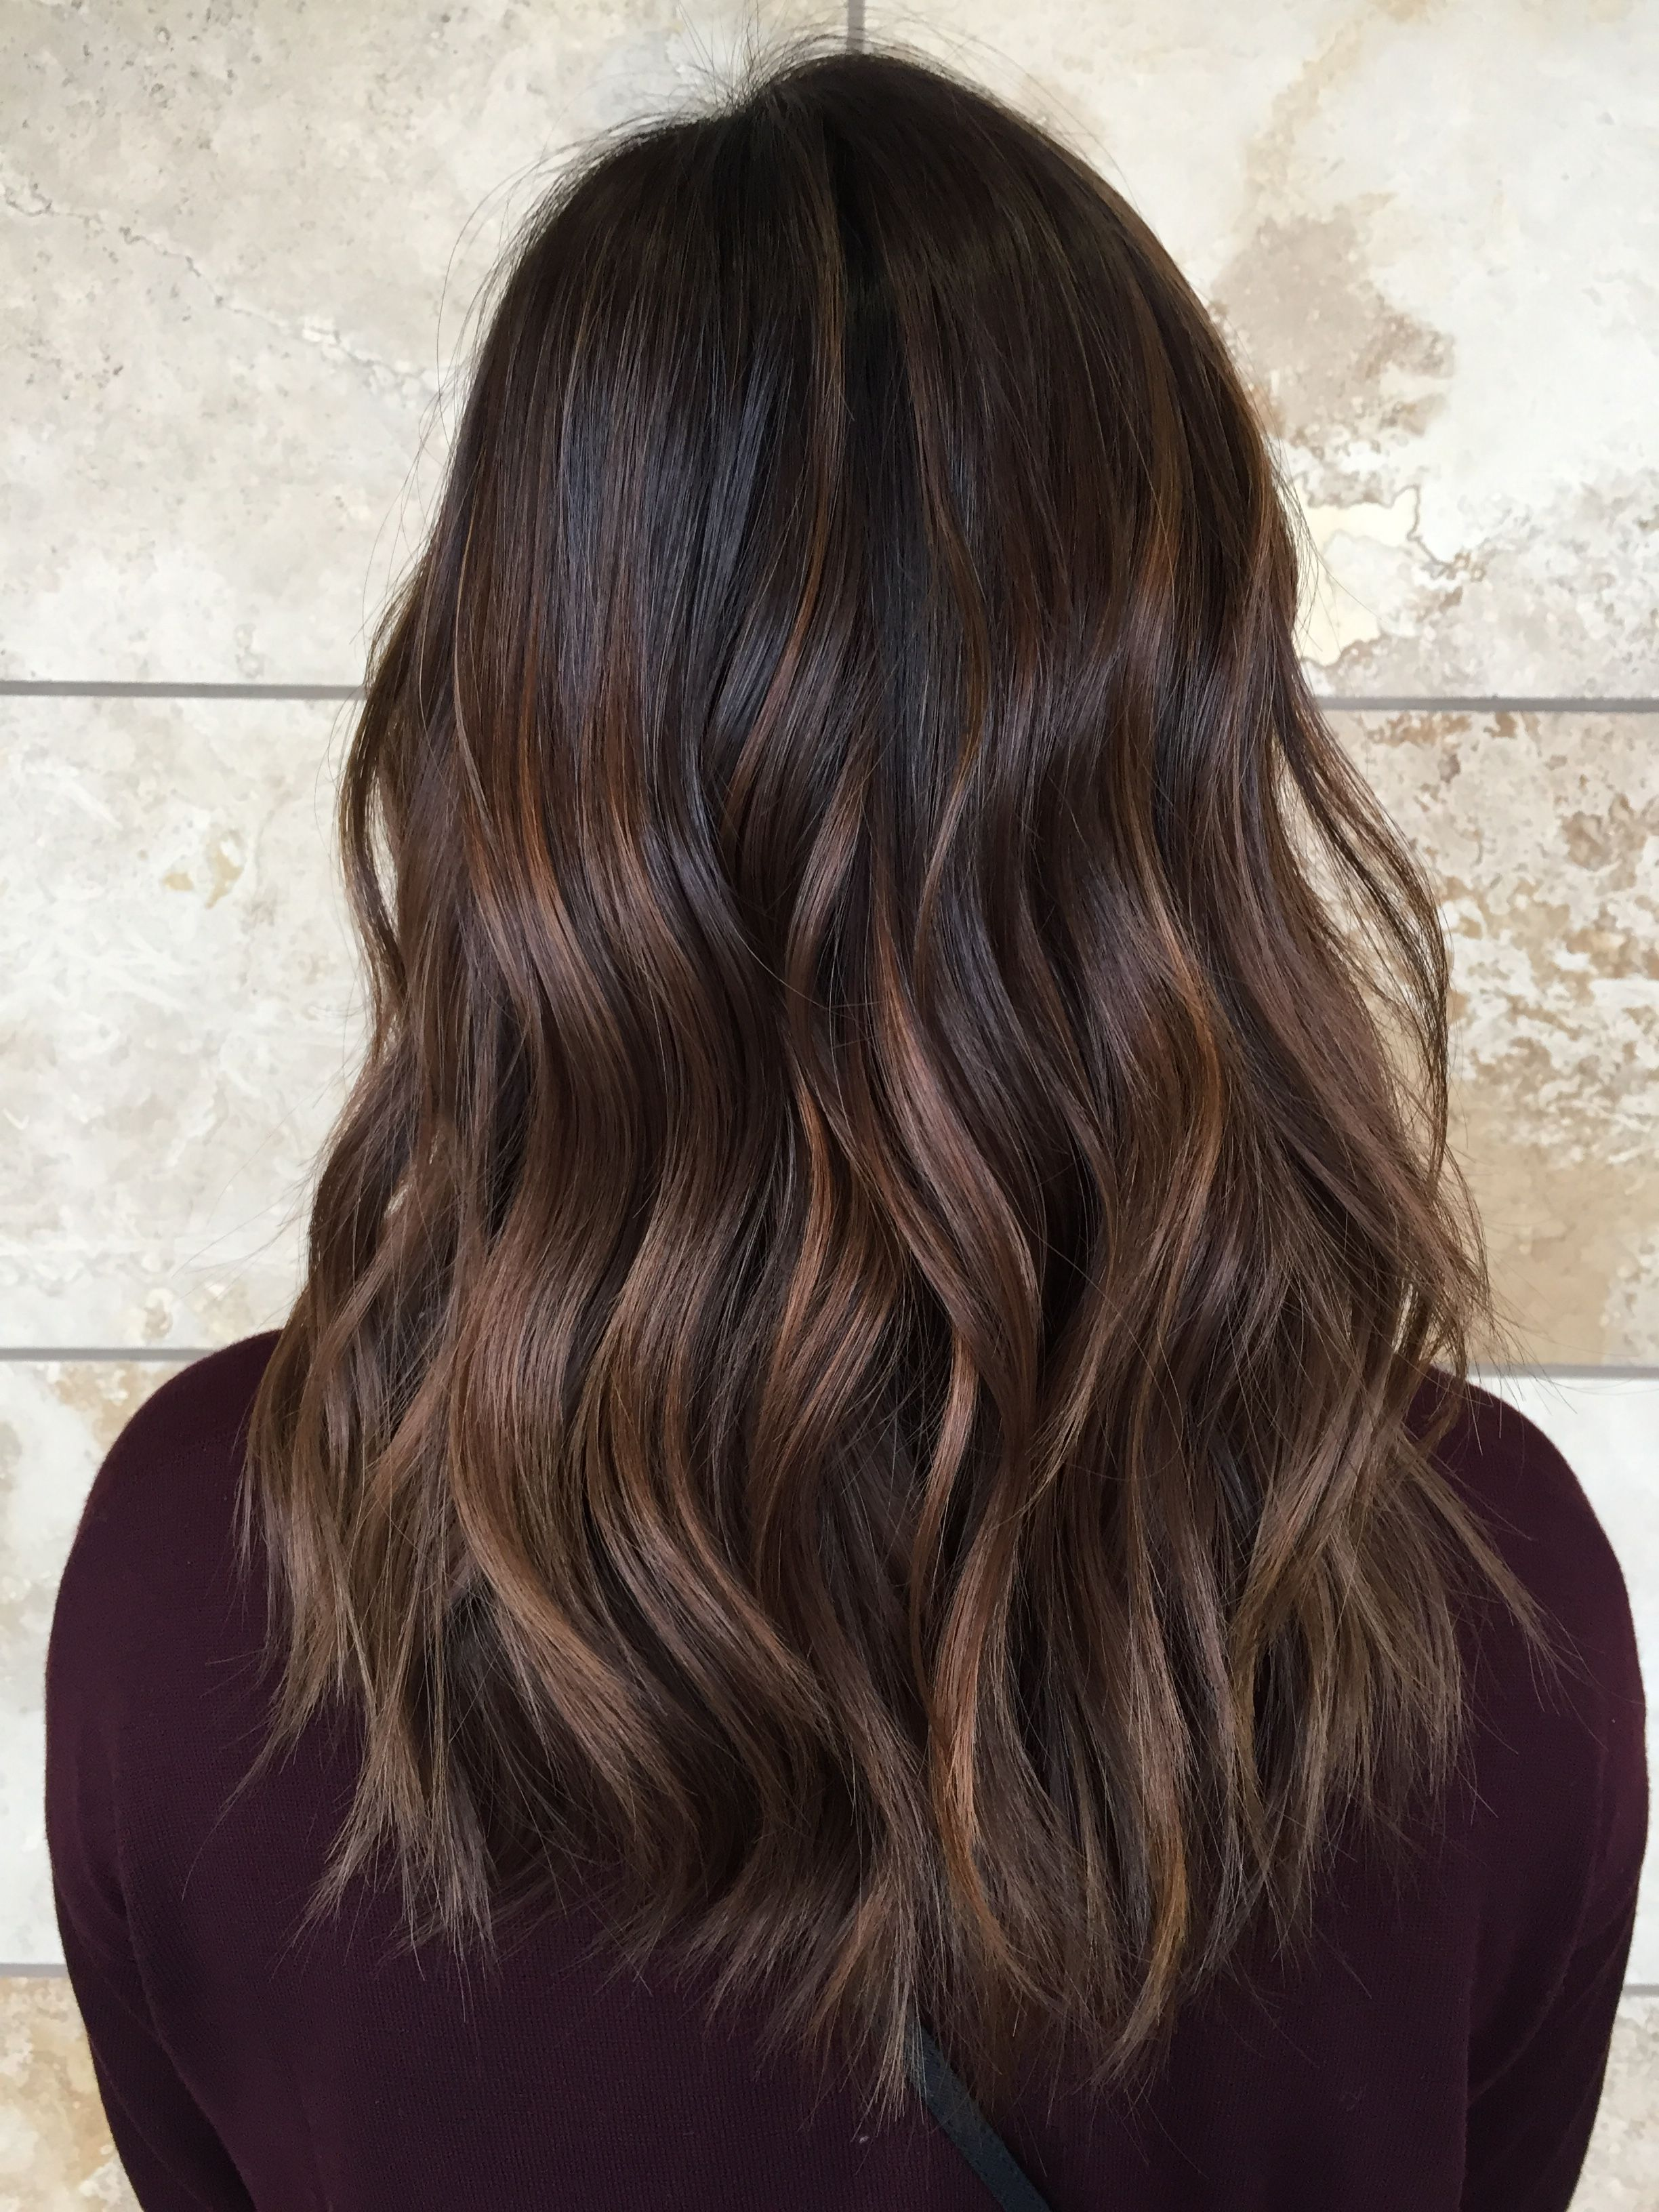 Caramel Balayage on Asian Hair http//shedonteversleep.tumblr.com/post